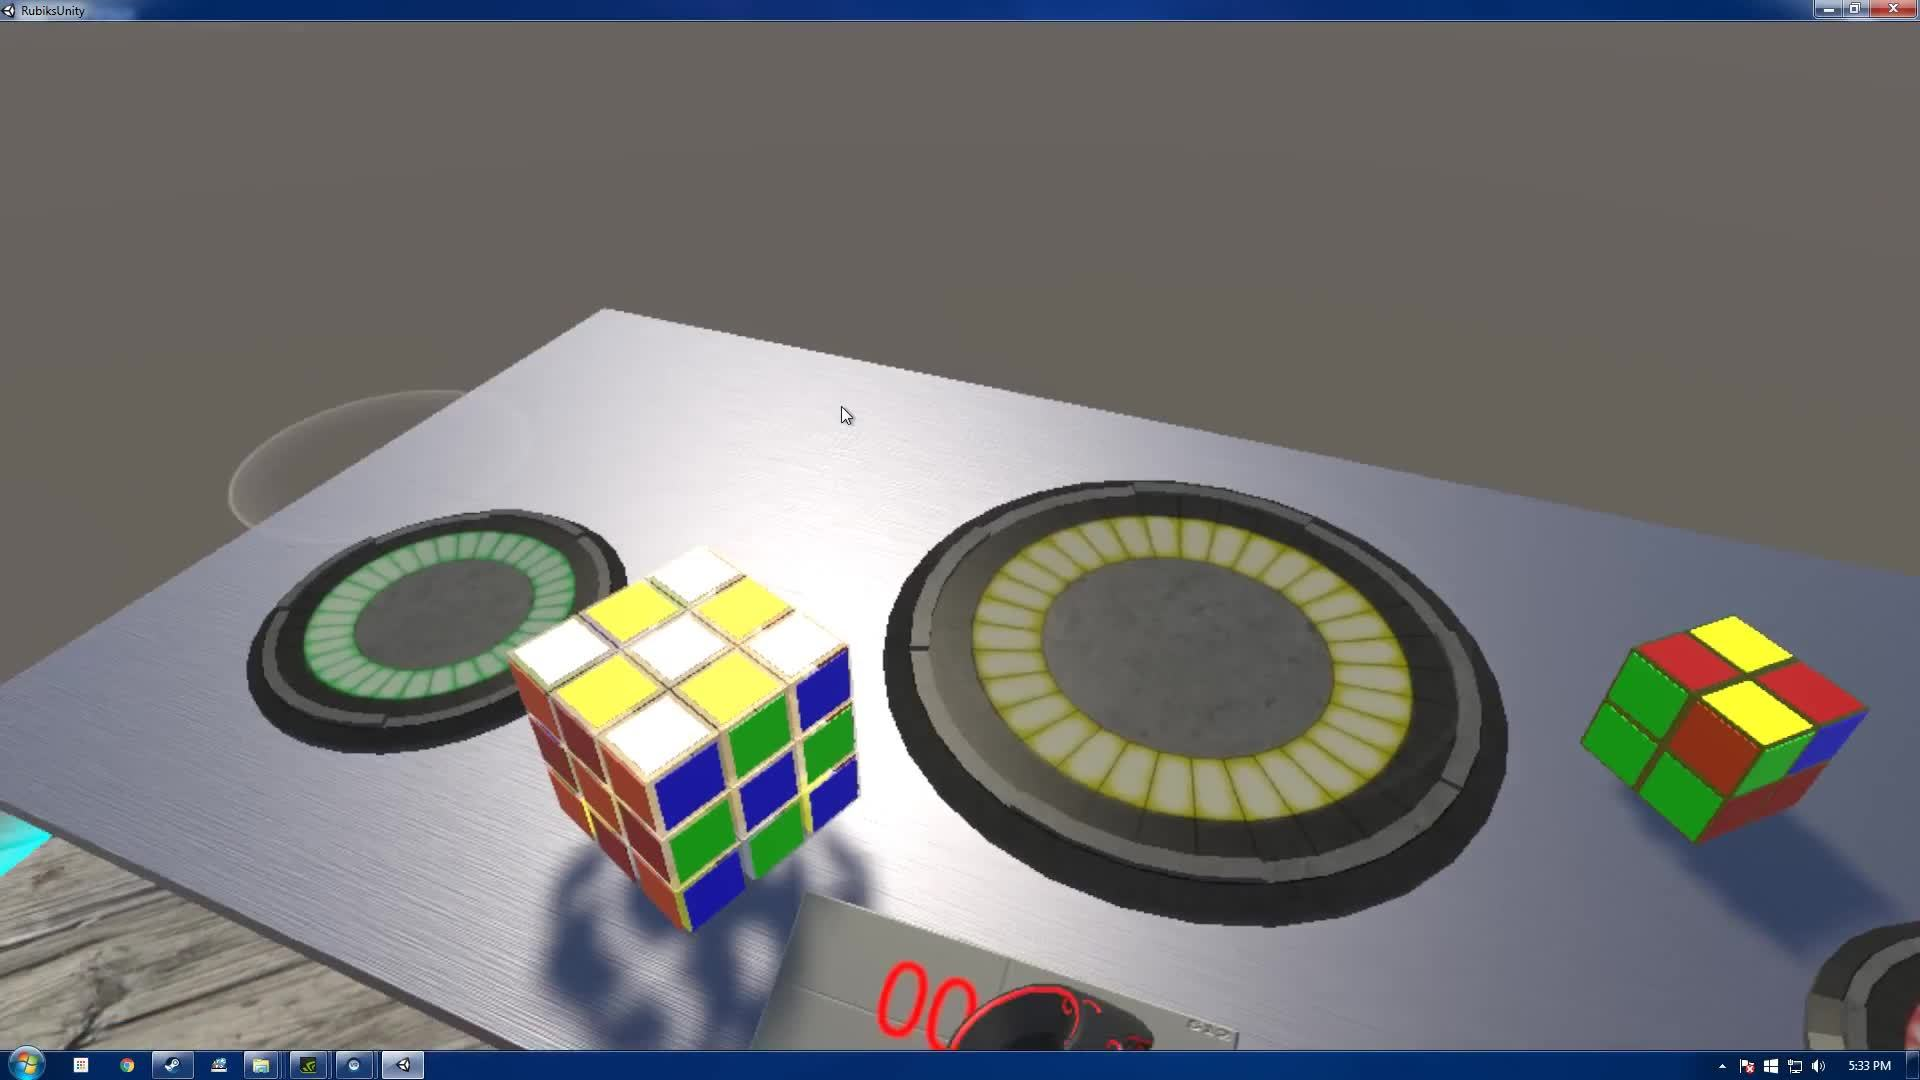 cuber, cubers, vive,  GIFs